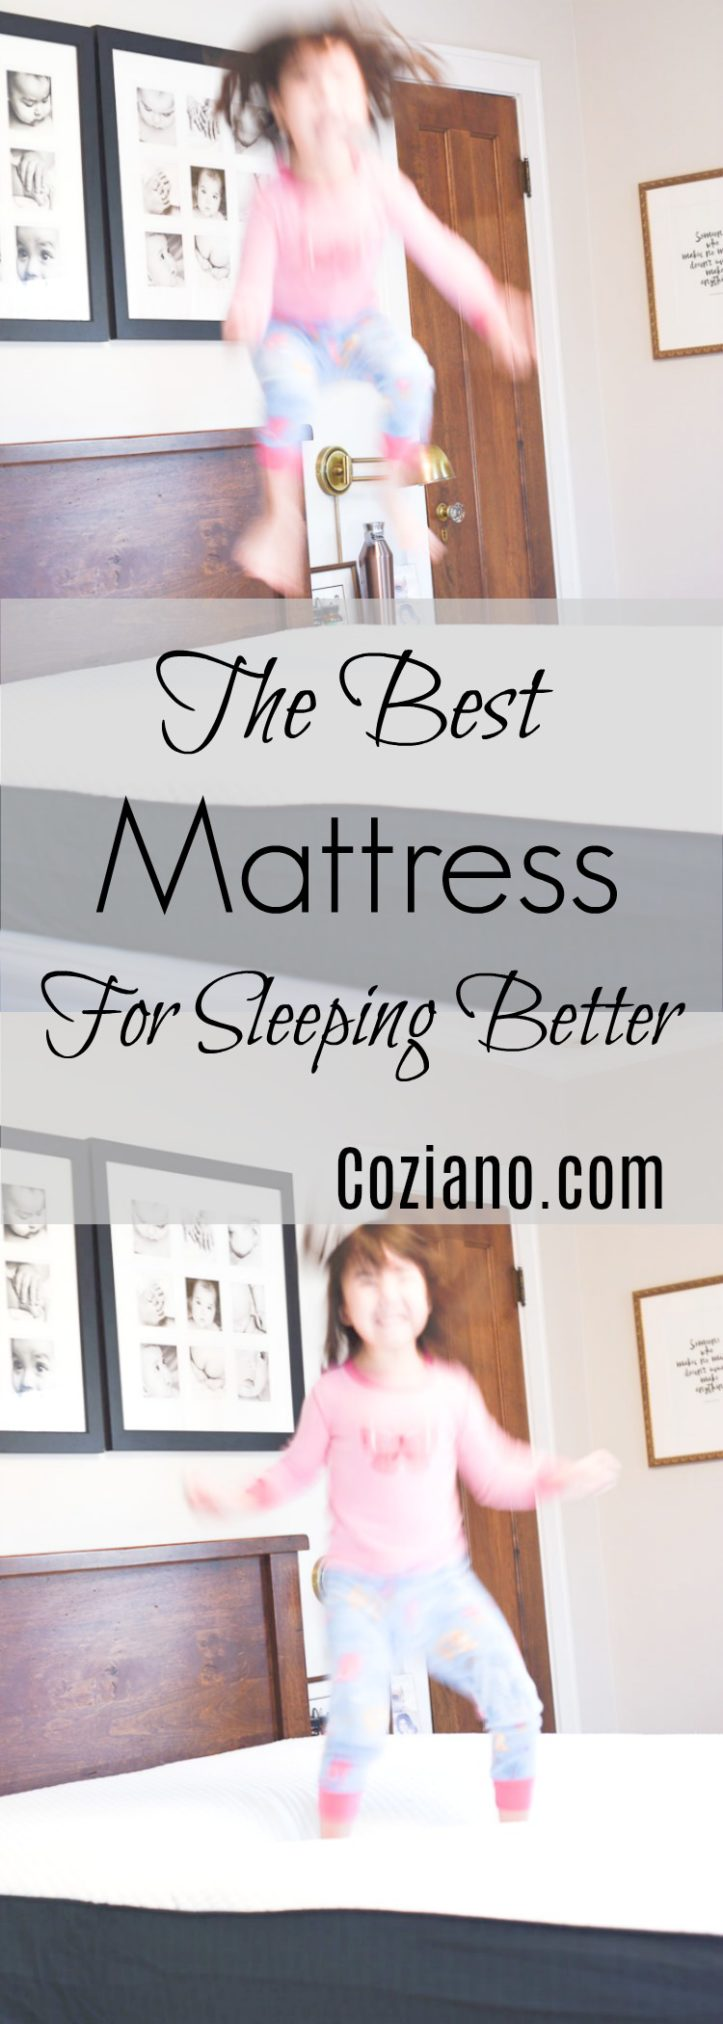 How to pick the right mattress to get better sleep #mattress #ad #sleepingtips at www.homewithkeki.com